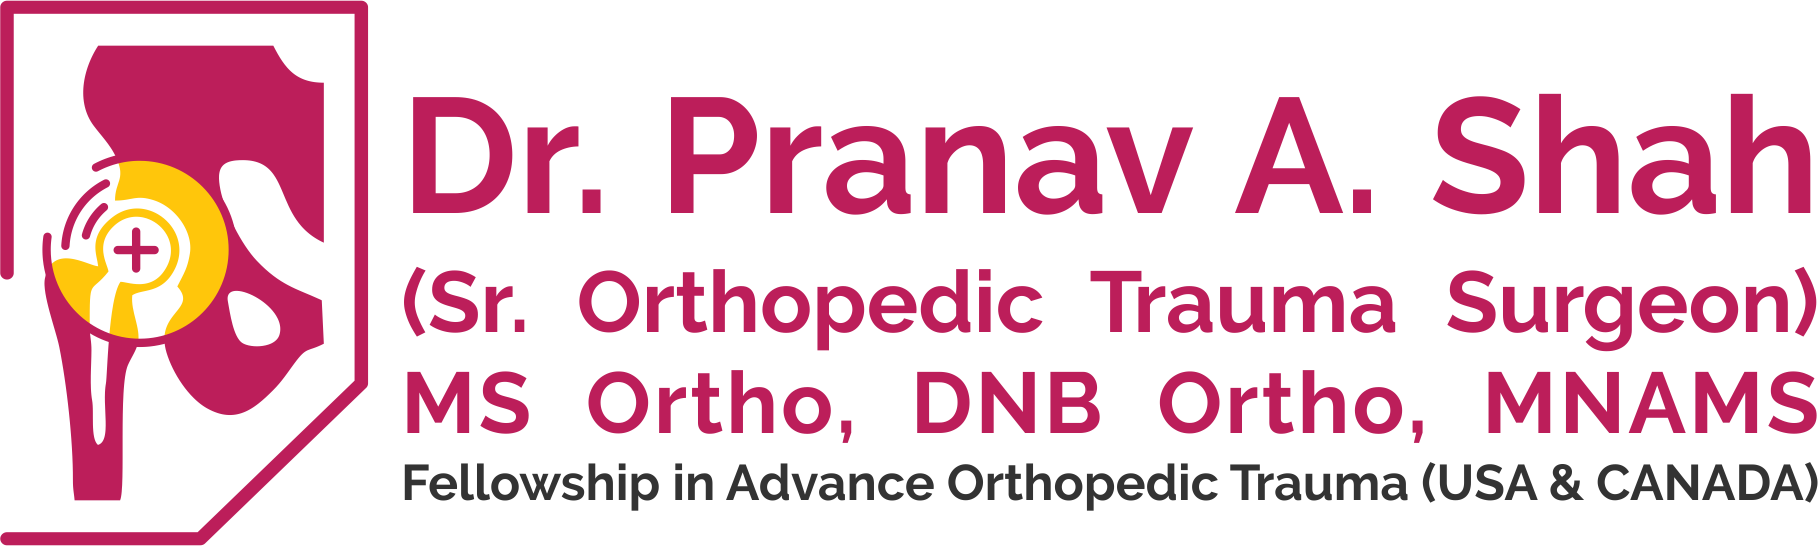 Complex Fracture in Ahmedabad, Gujarat & Rajasthan by One of the Best Orthopedic Surgeons in AhmedabadDr. Pranav Shah